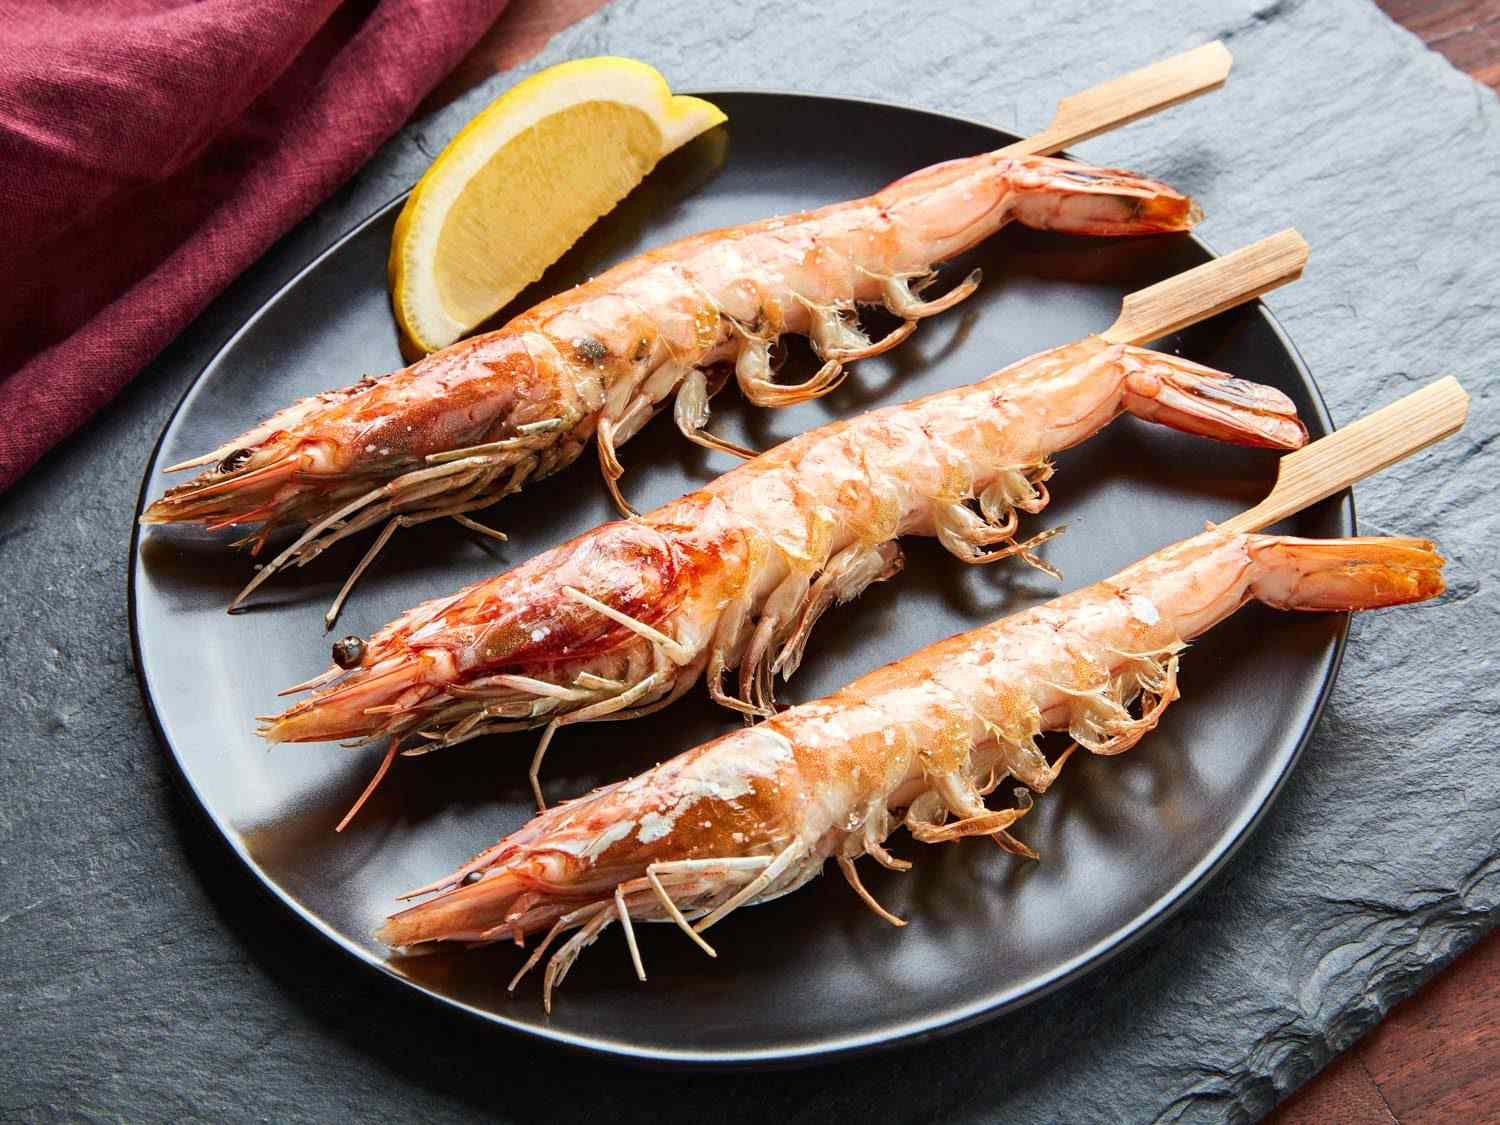 Three cooked head-on shrimp on a plate, with a lemon wedge